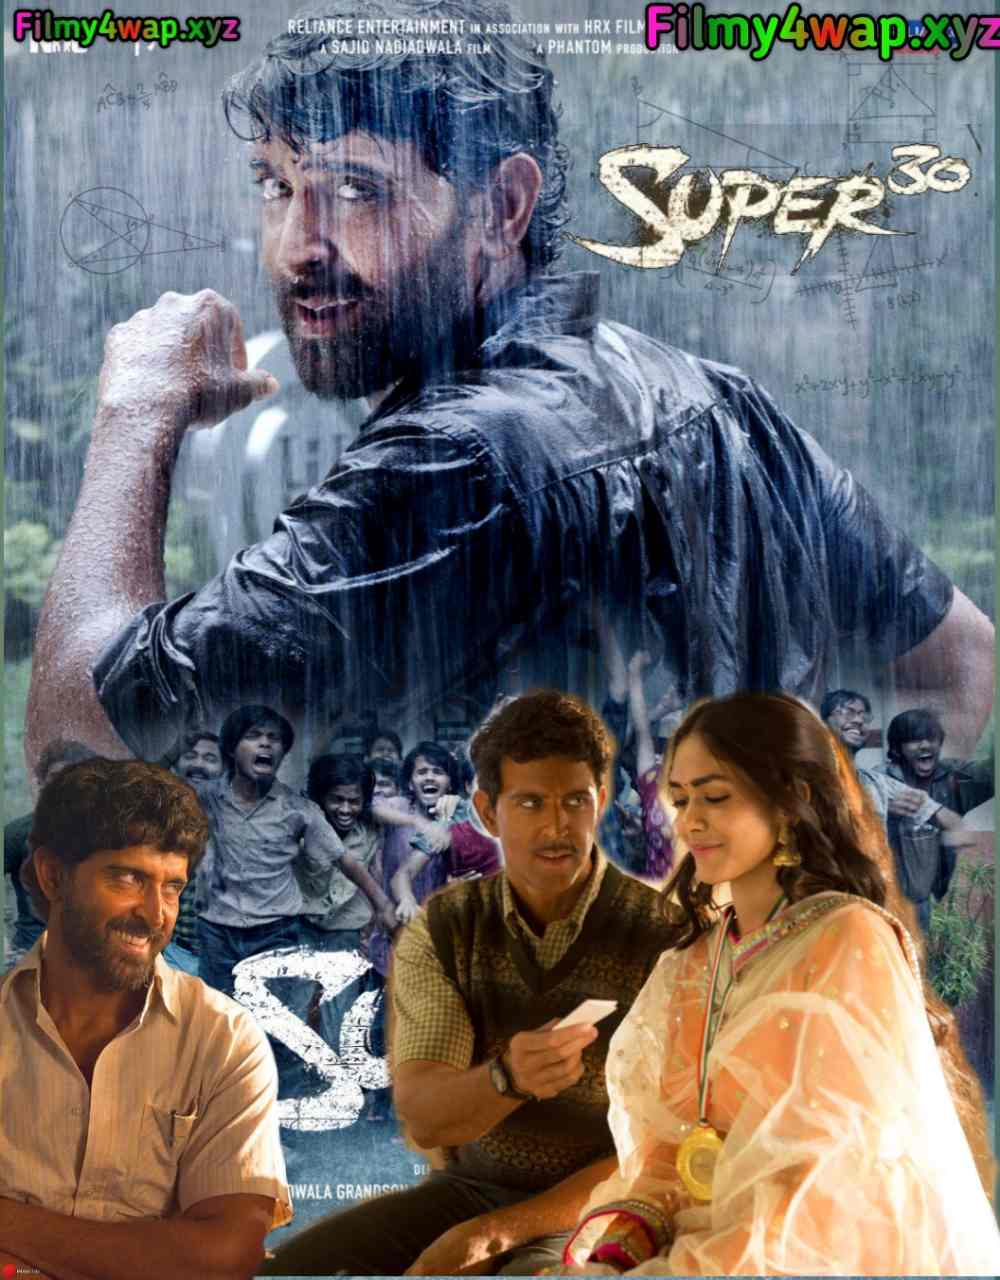 Super 30 (2019) New Bollywood full Movie 400MB 700MB And 1.4GB